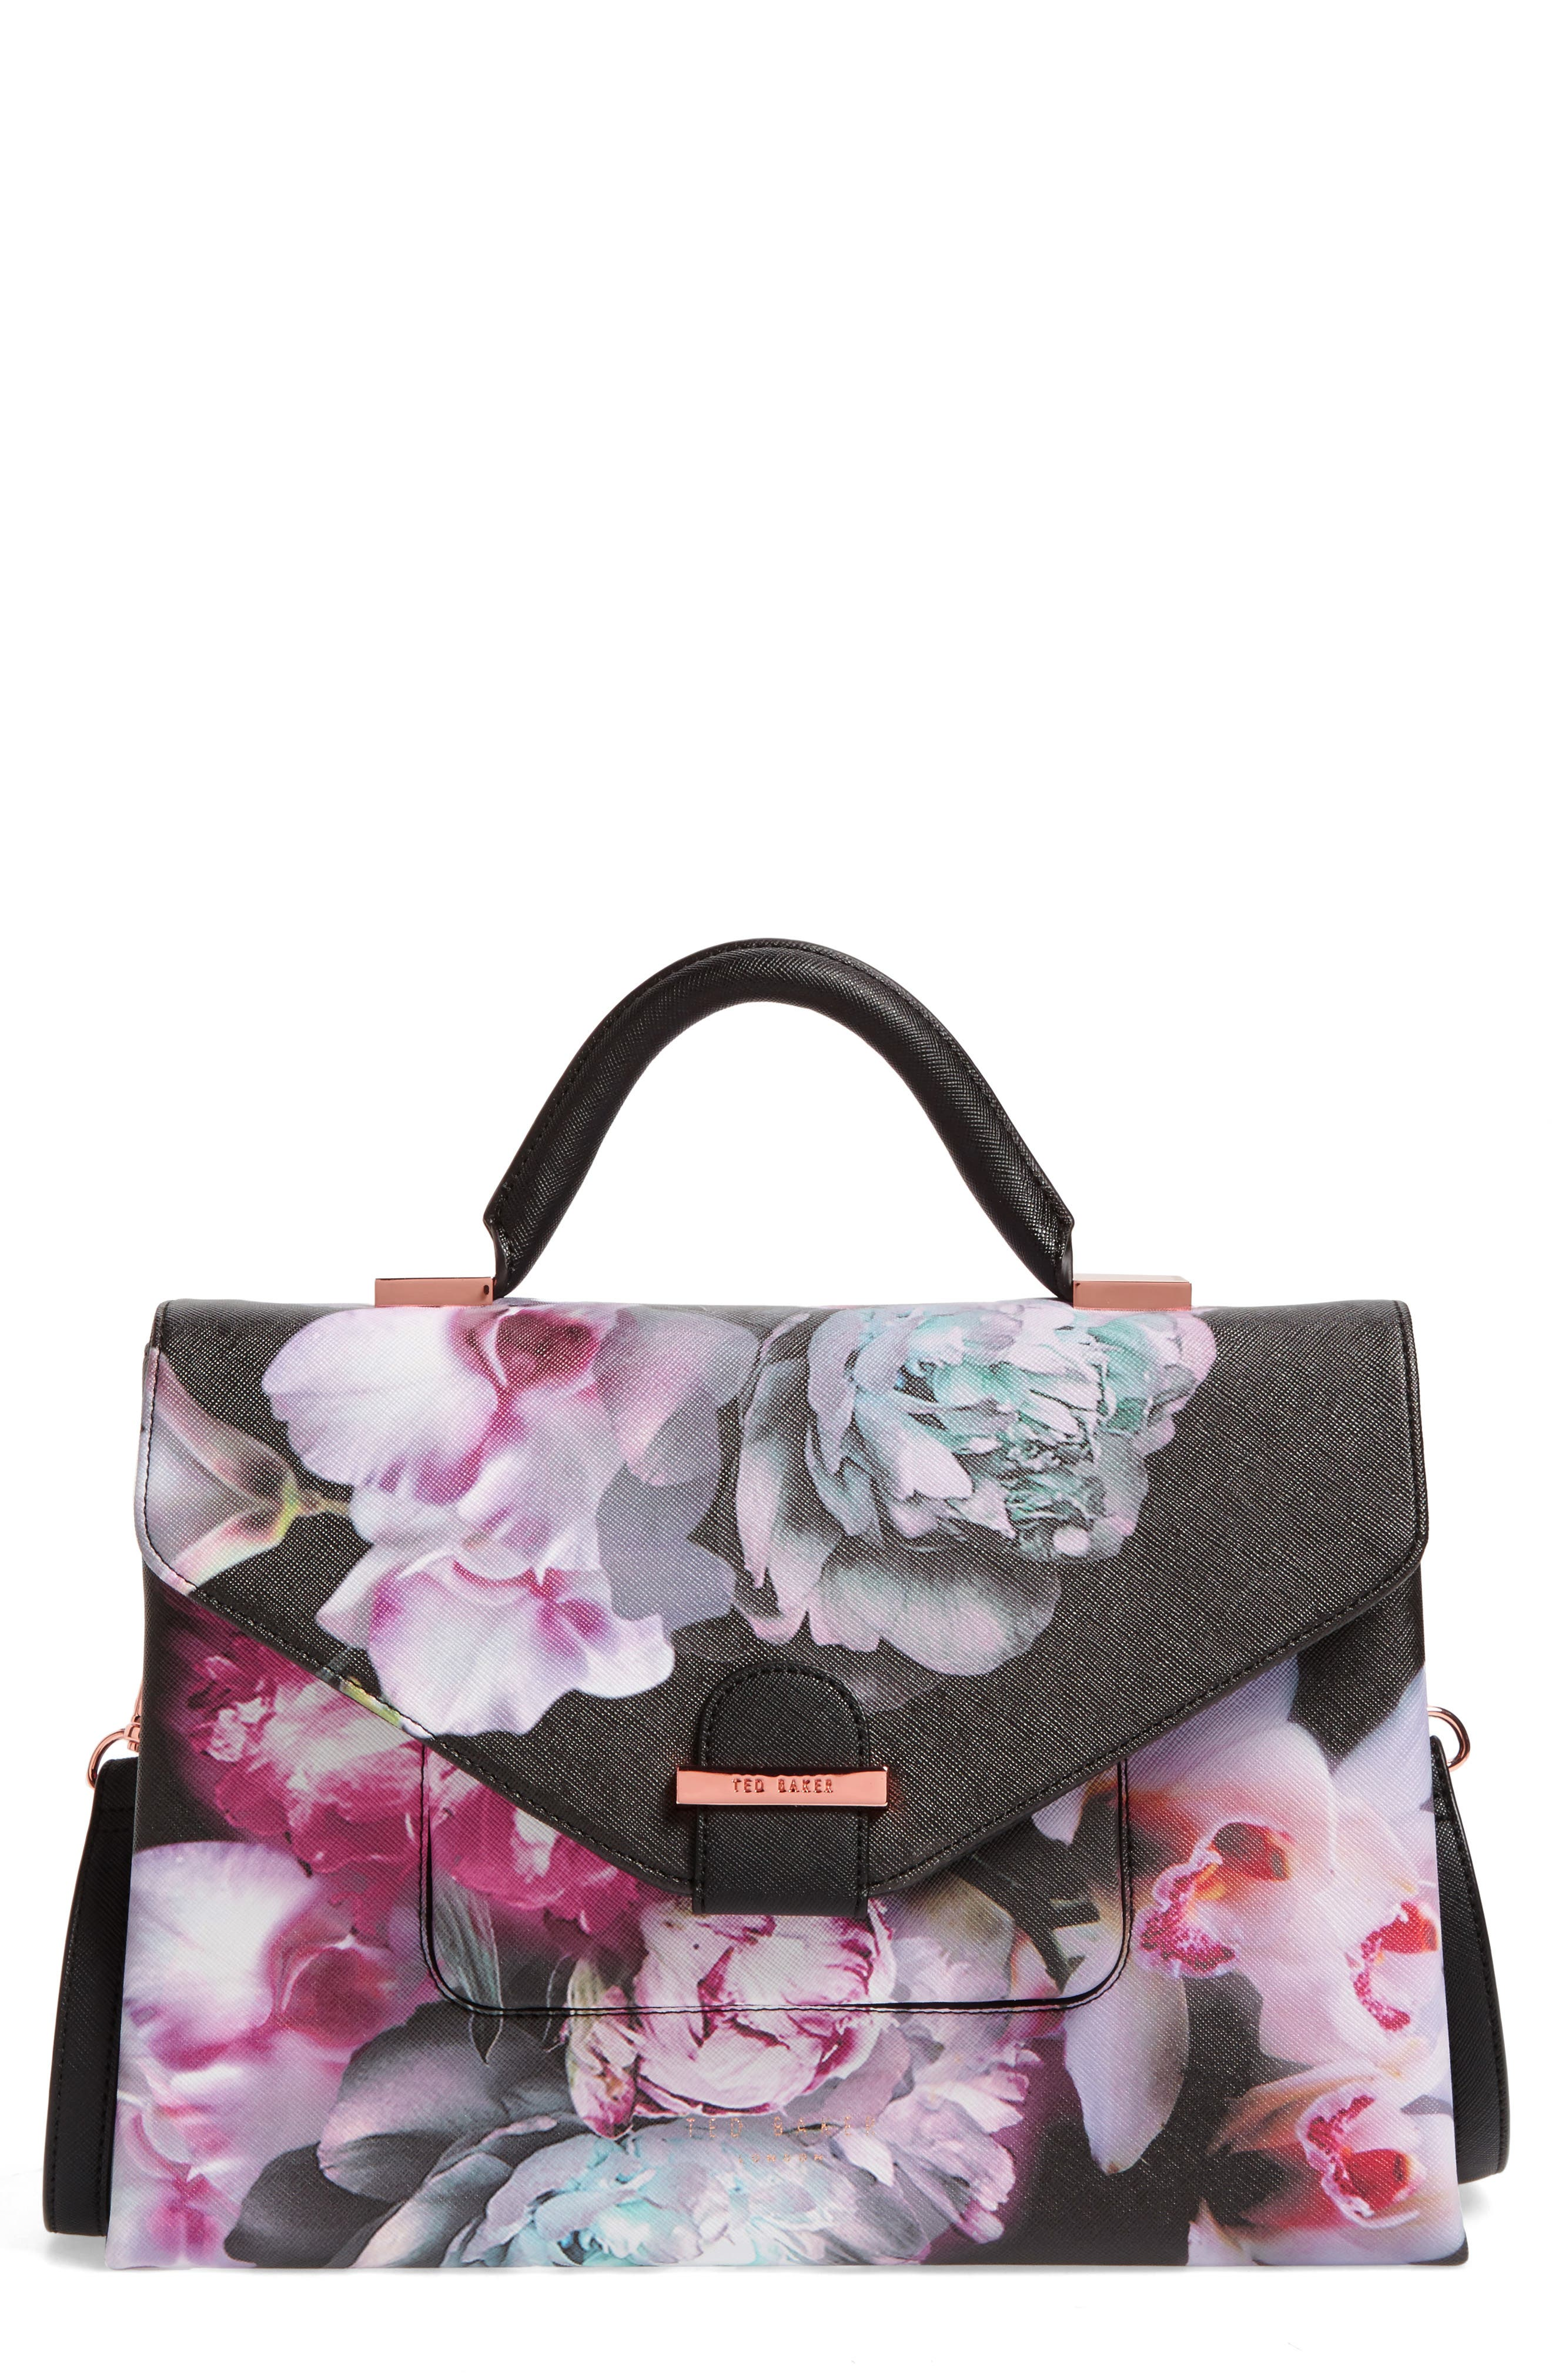 Alternate Image 1 Selected - Ted Baker London Ethereal Posie Faux Leather Satchel